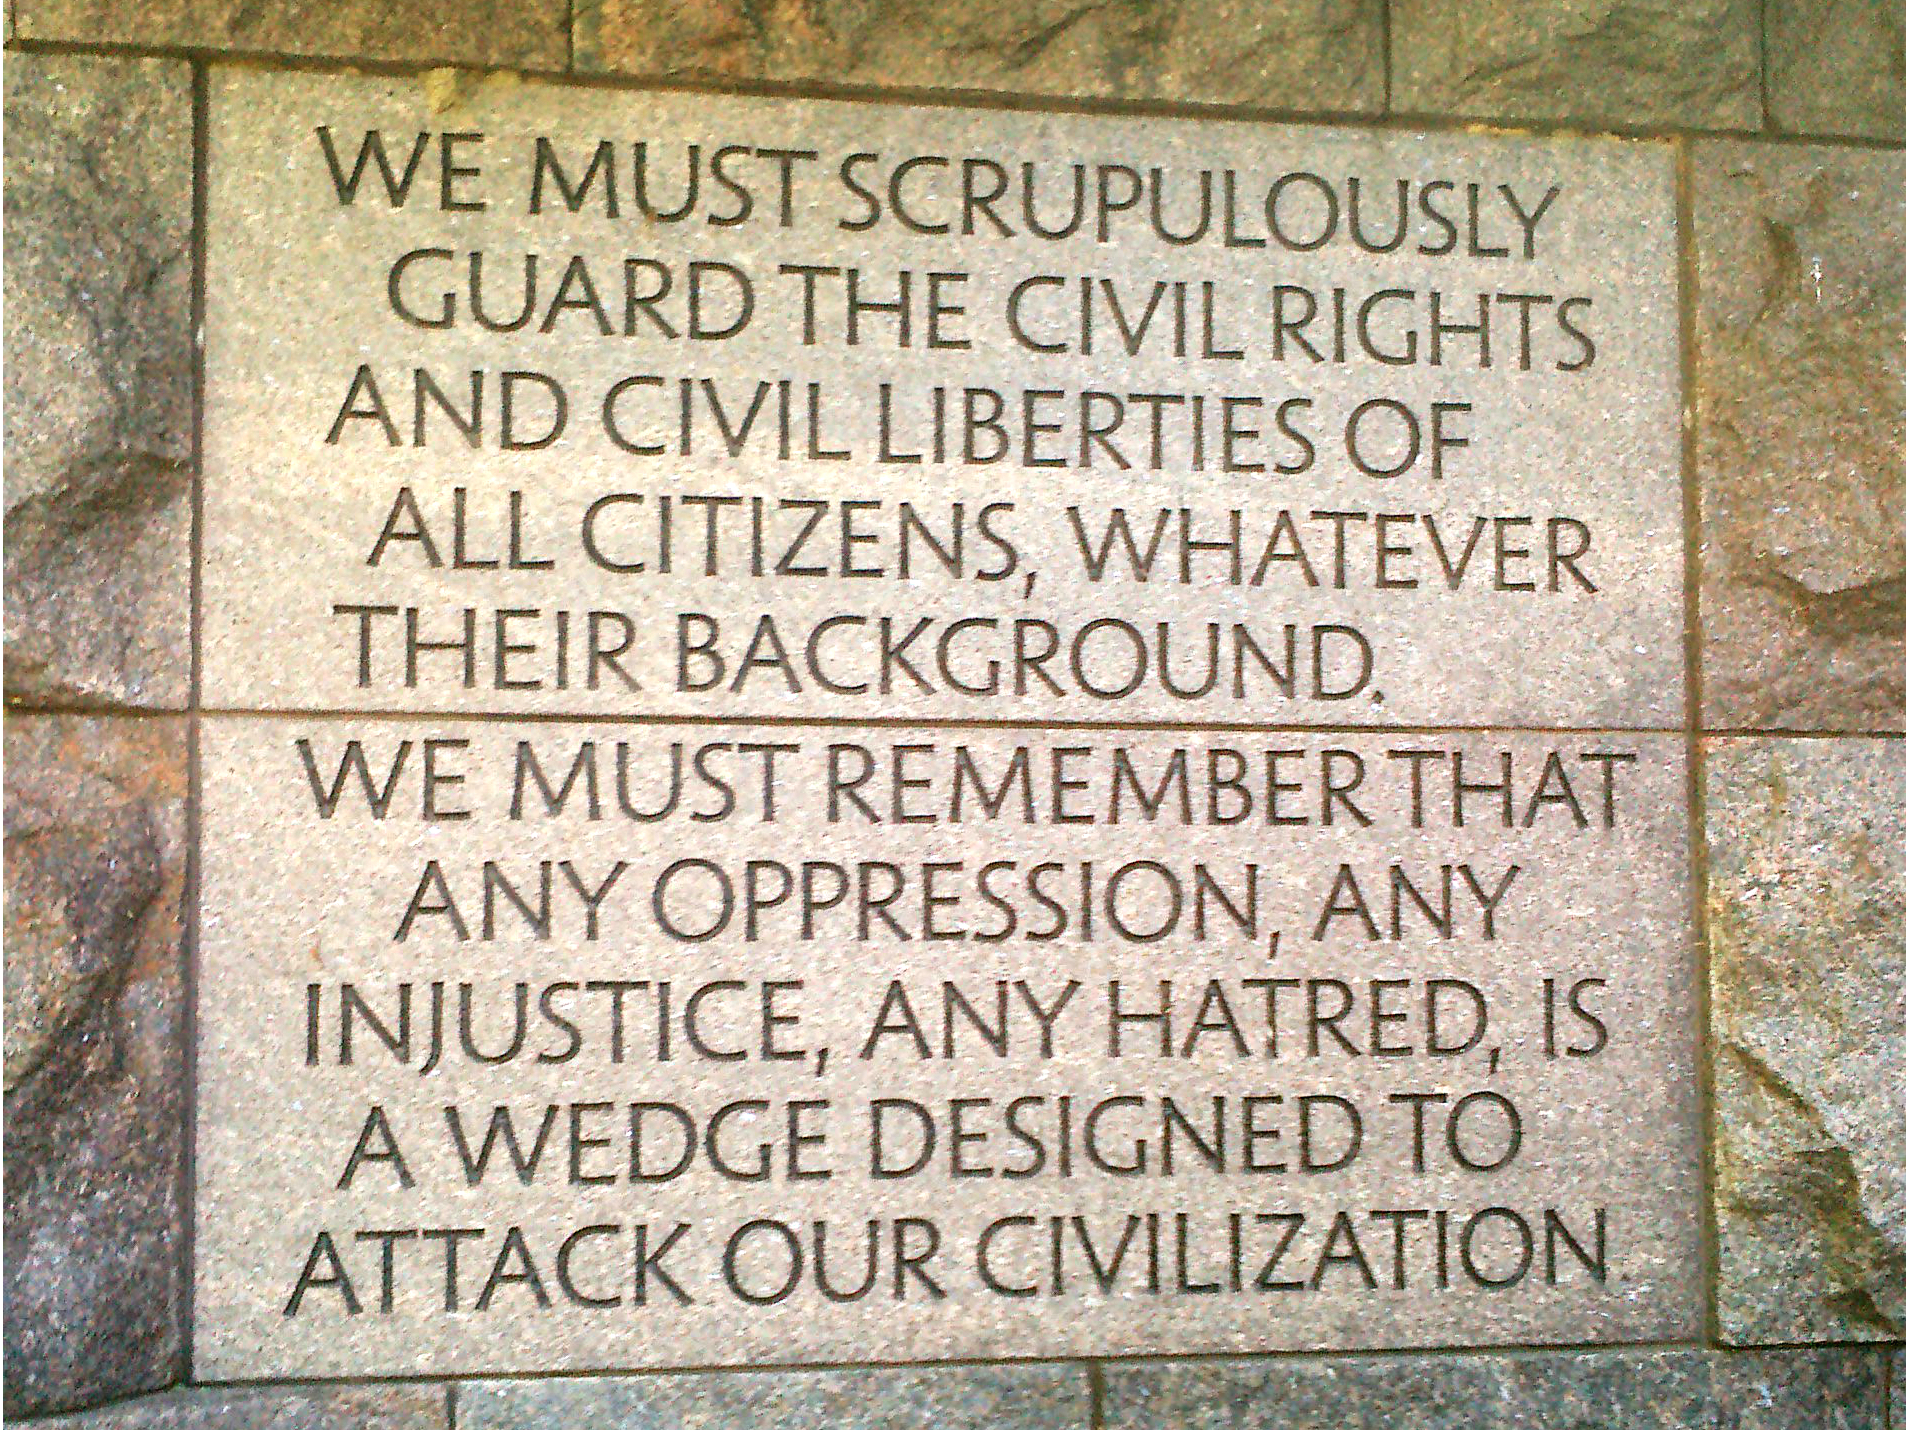 """""""We must scrupulously guard the civil rights and civil liberties of all citizens, whatever their background. We must remember that any oppression, any injustice, and hatred, is a wedge designed to attack our civilization."""""""